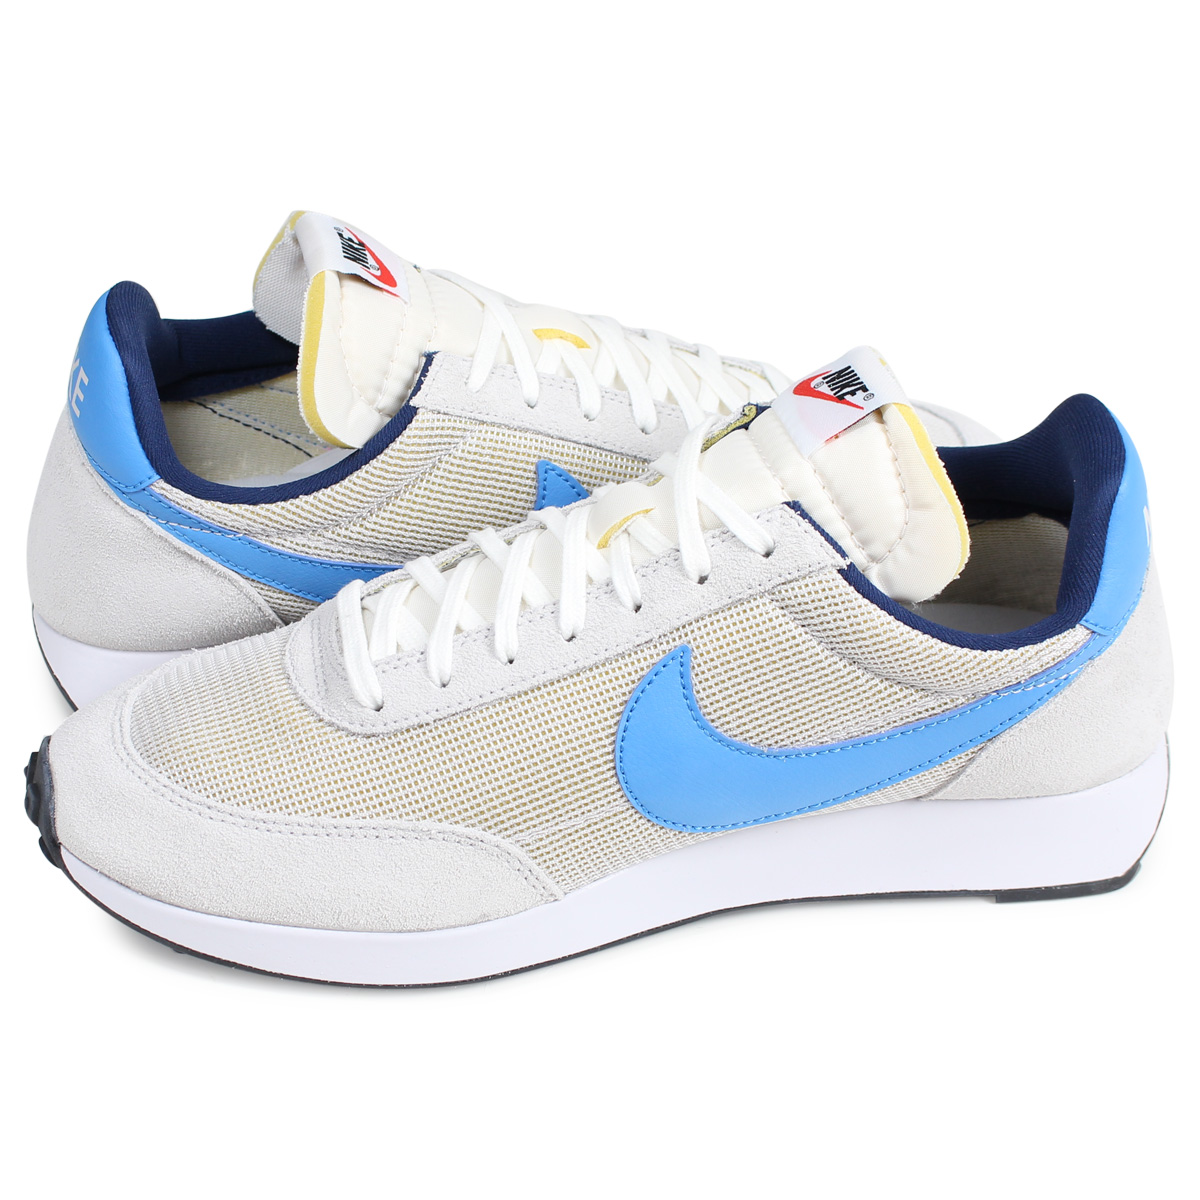 best sneakers fe632 760cc Nike NIKE air tale wind sneakers men gap Dis AIR TAILWIND 79 OG light gray  BQ5878-001 [the 9/6 additional arrival] [198]